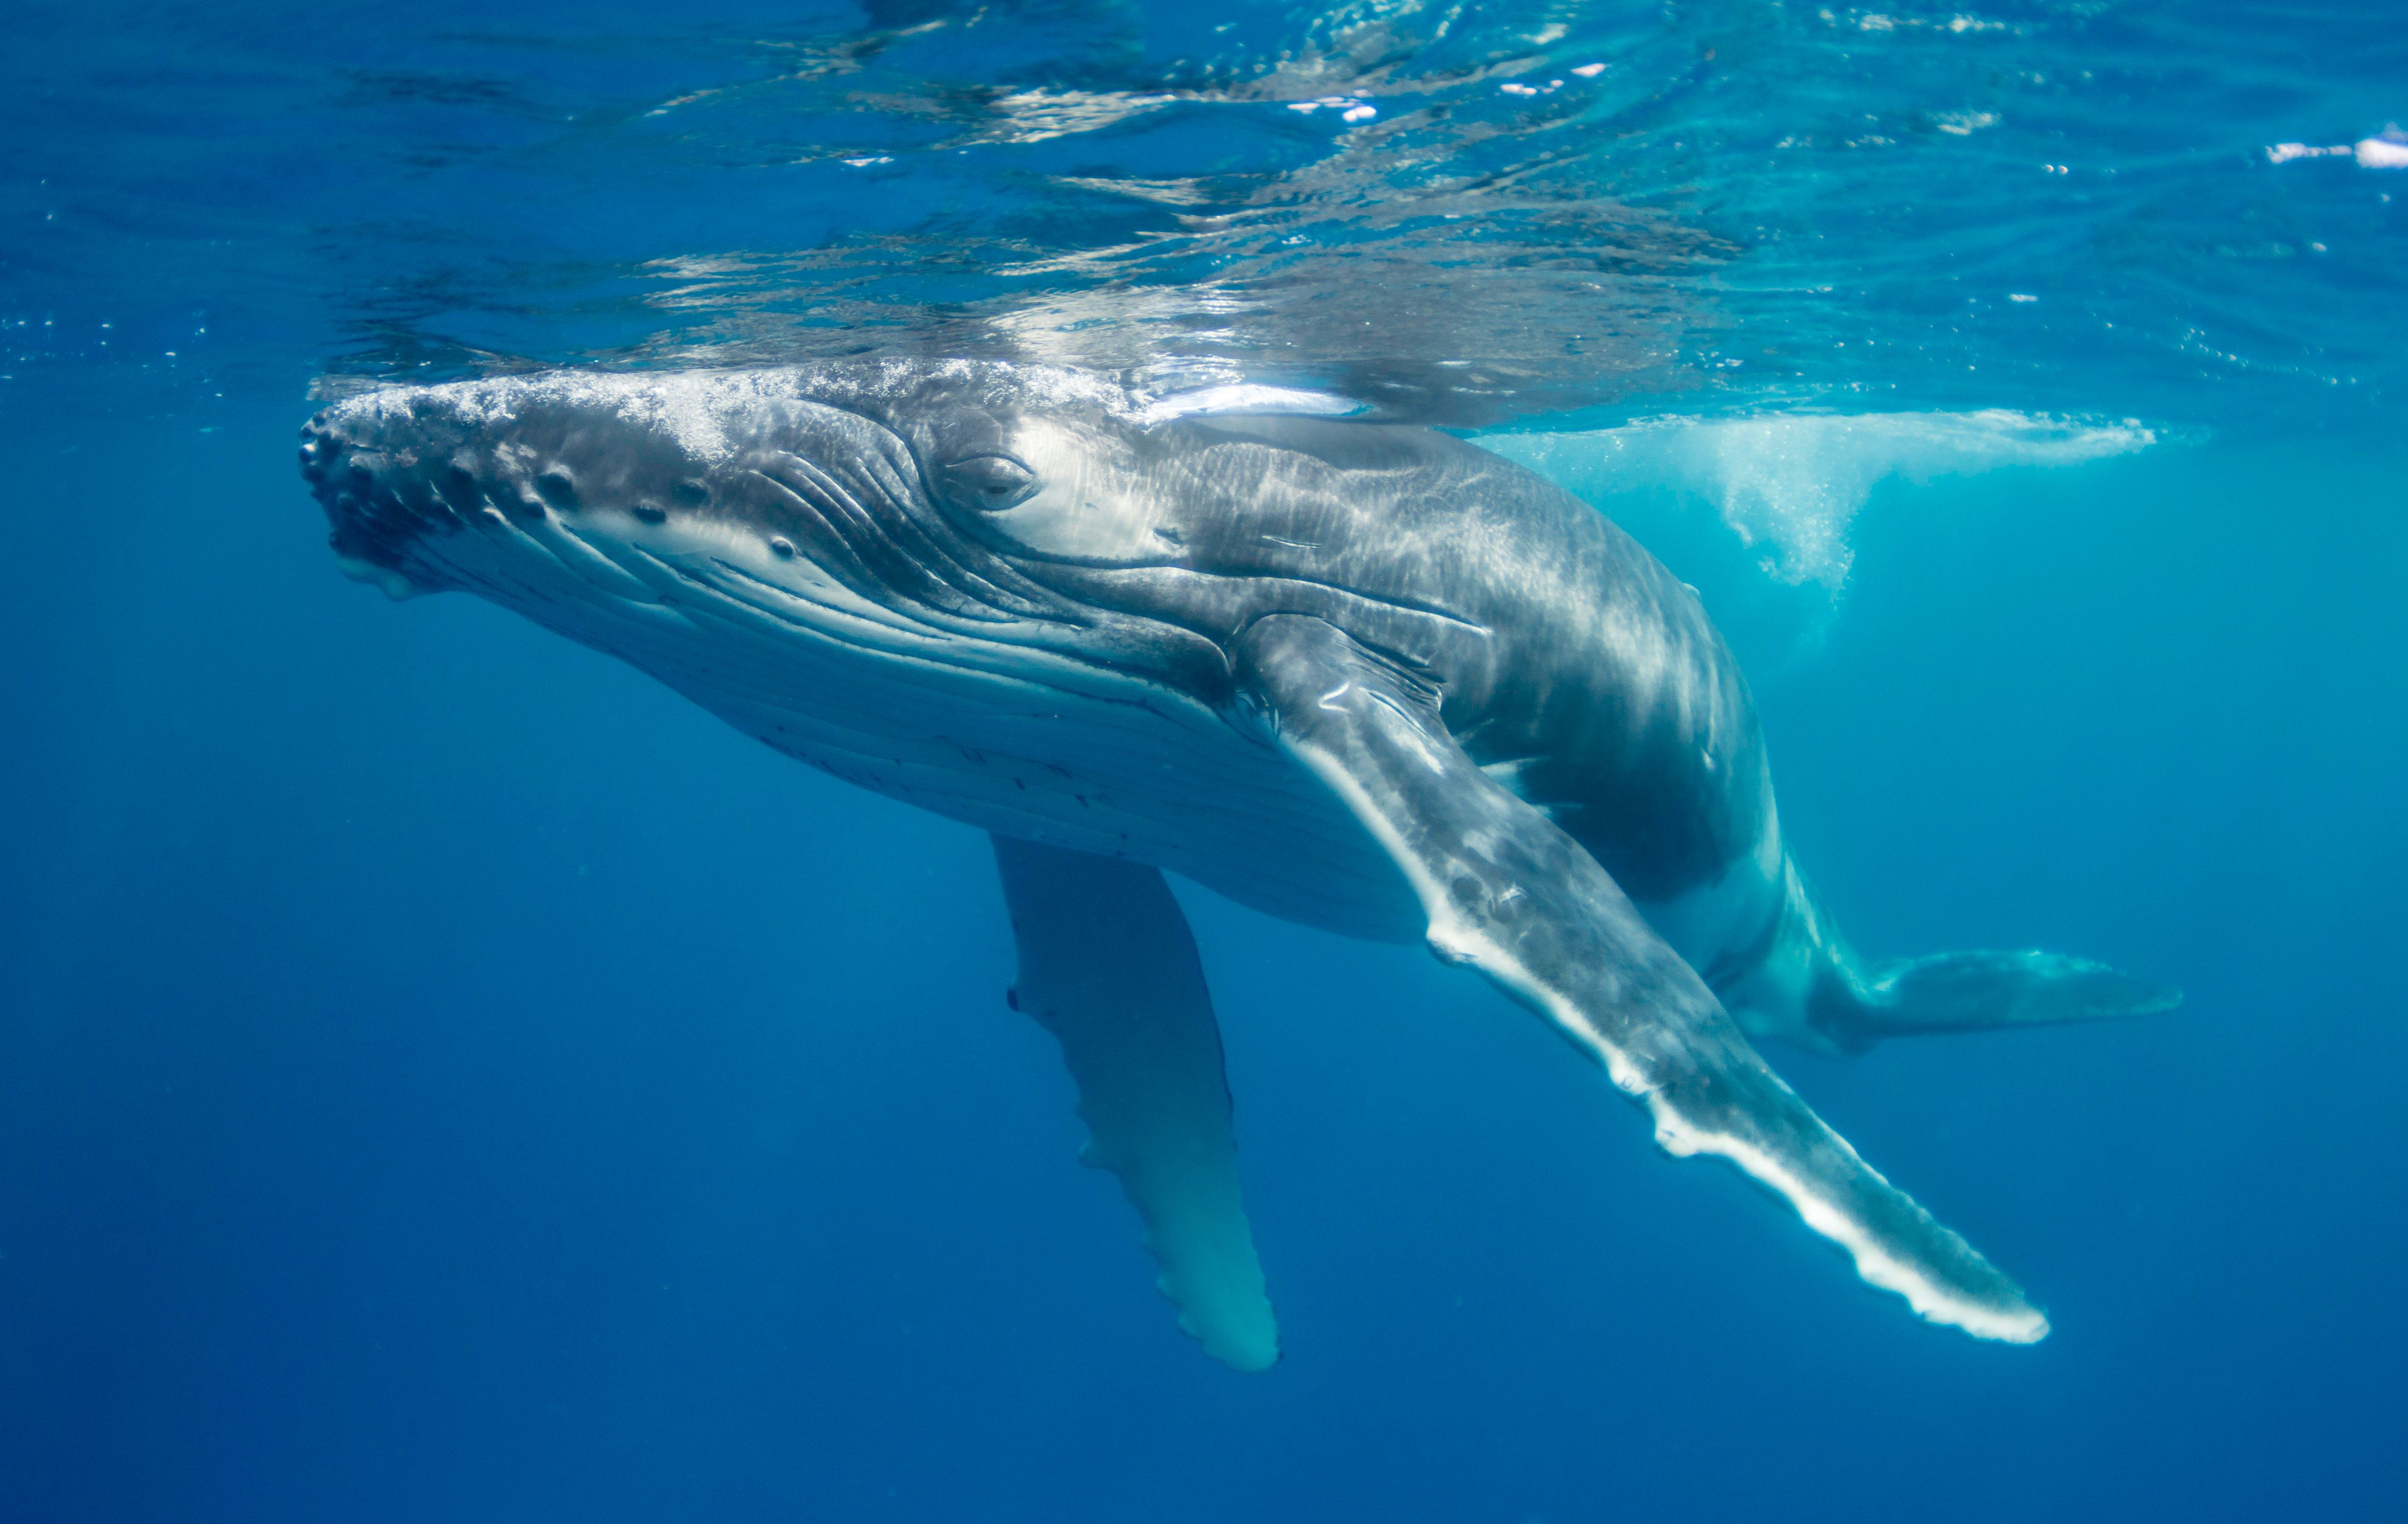 The NOAA filed on Tuesday two regulations for whales in Hawaiian and Alaskan waters, enforcing the distance...